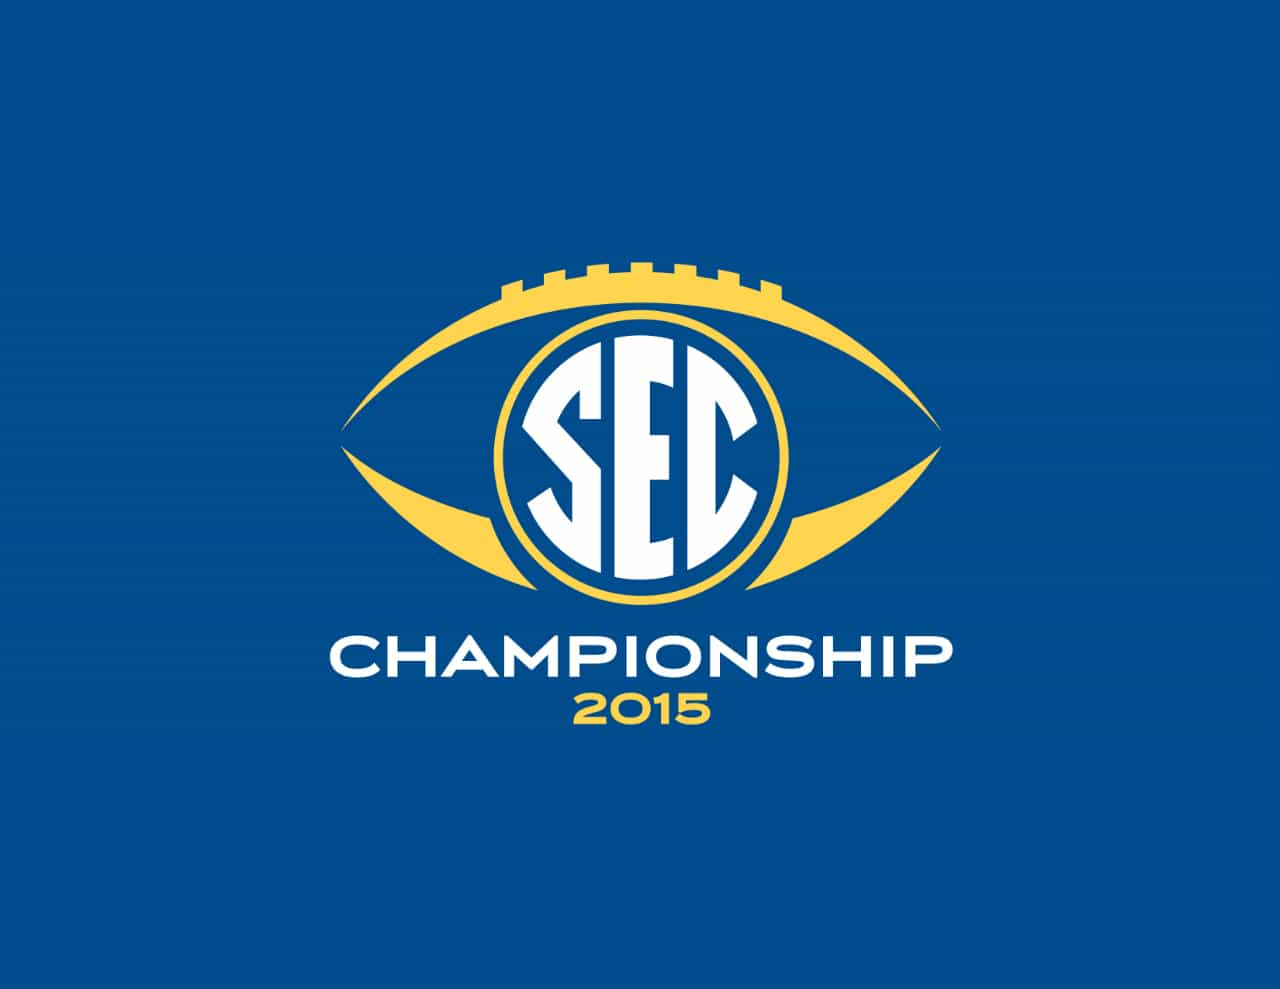 Picture courtesy of the Southeastern Conference